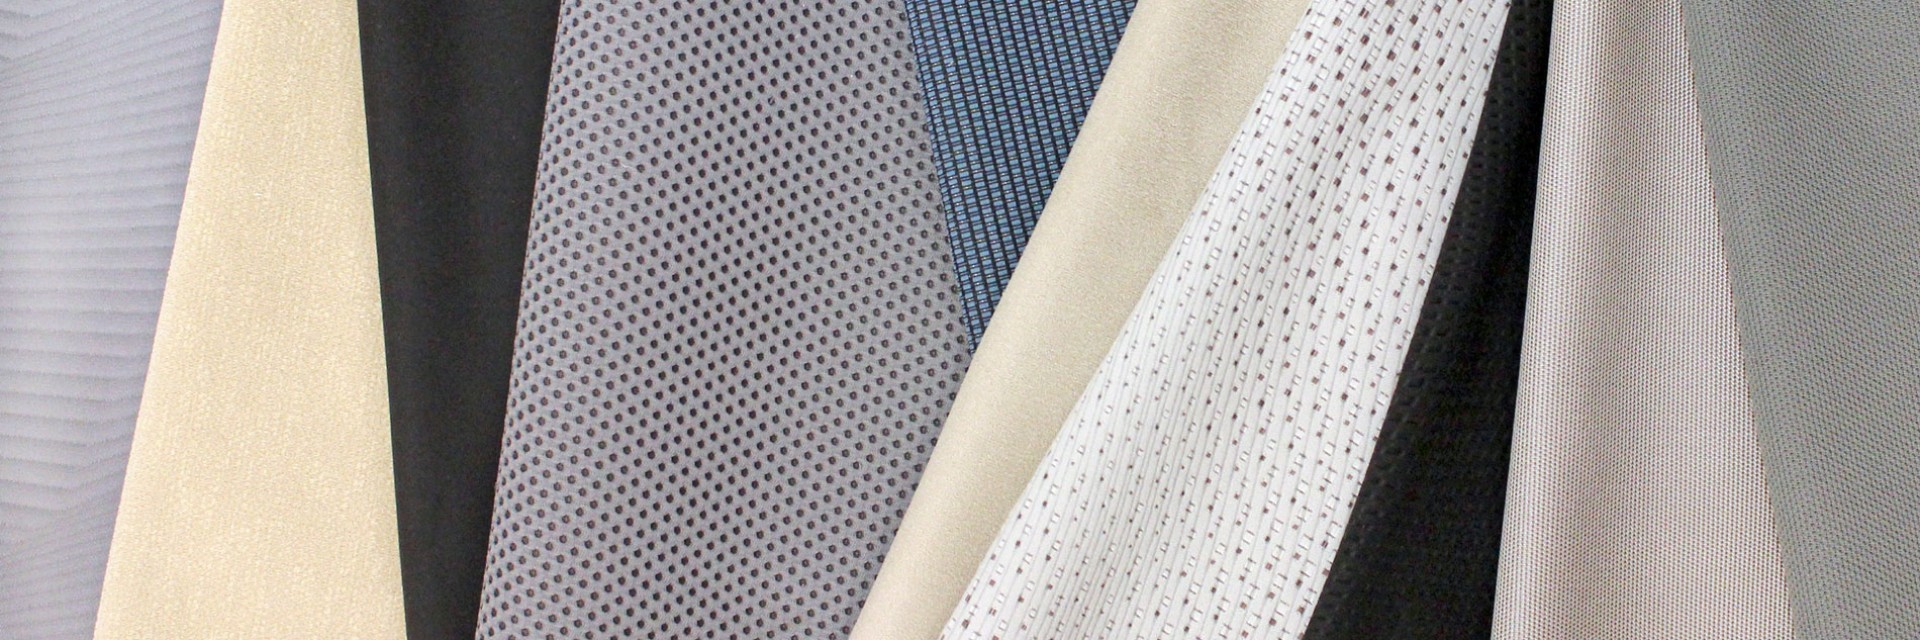 High Quality Woven-Knitted Automotive Fabrics